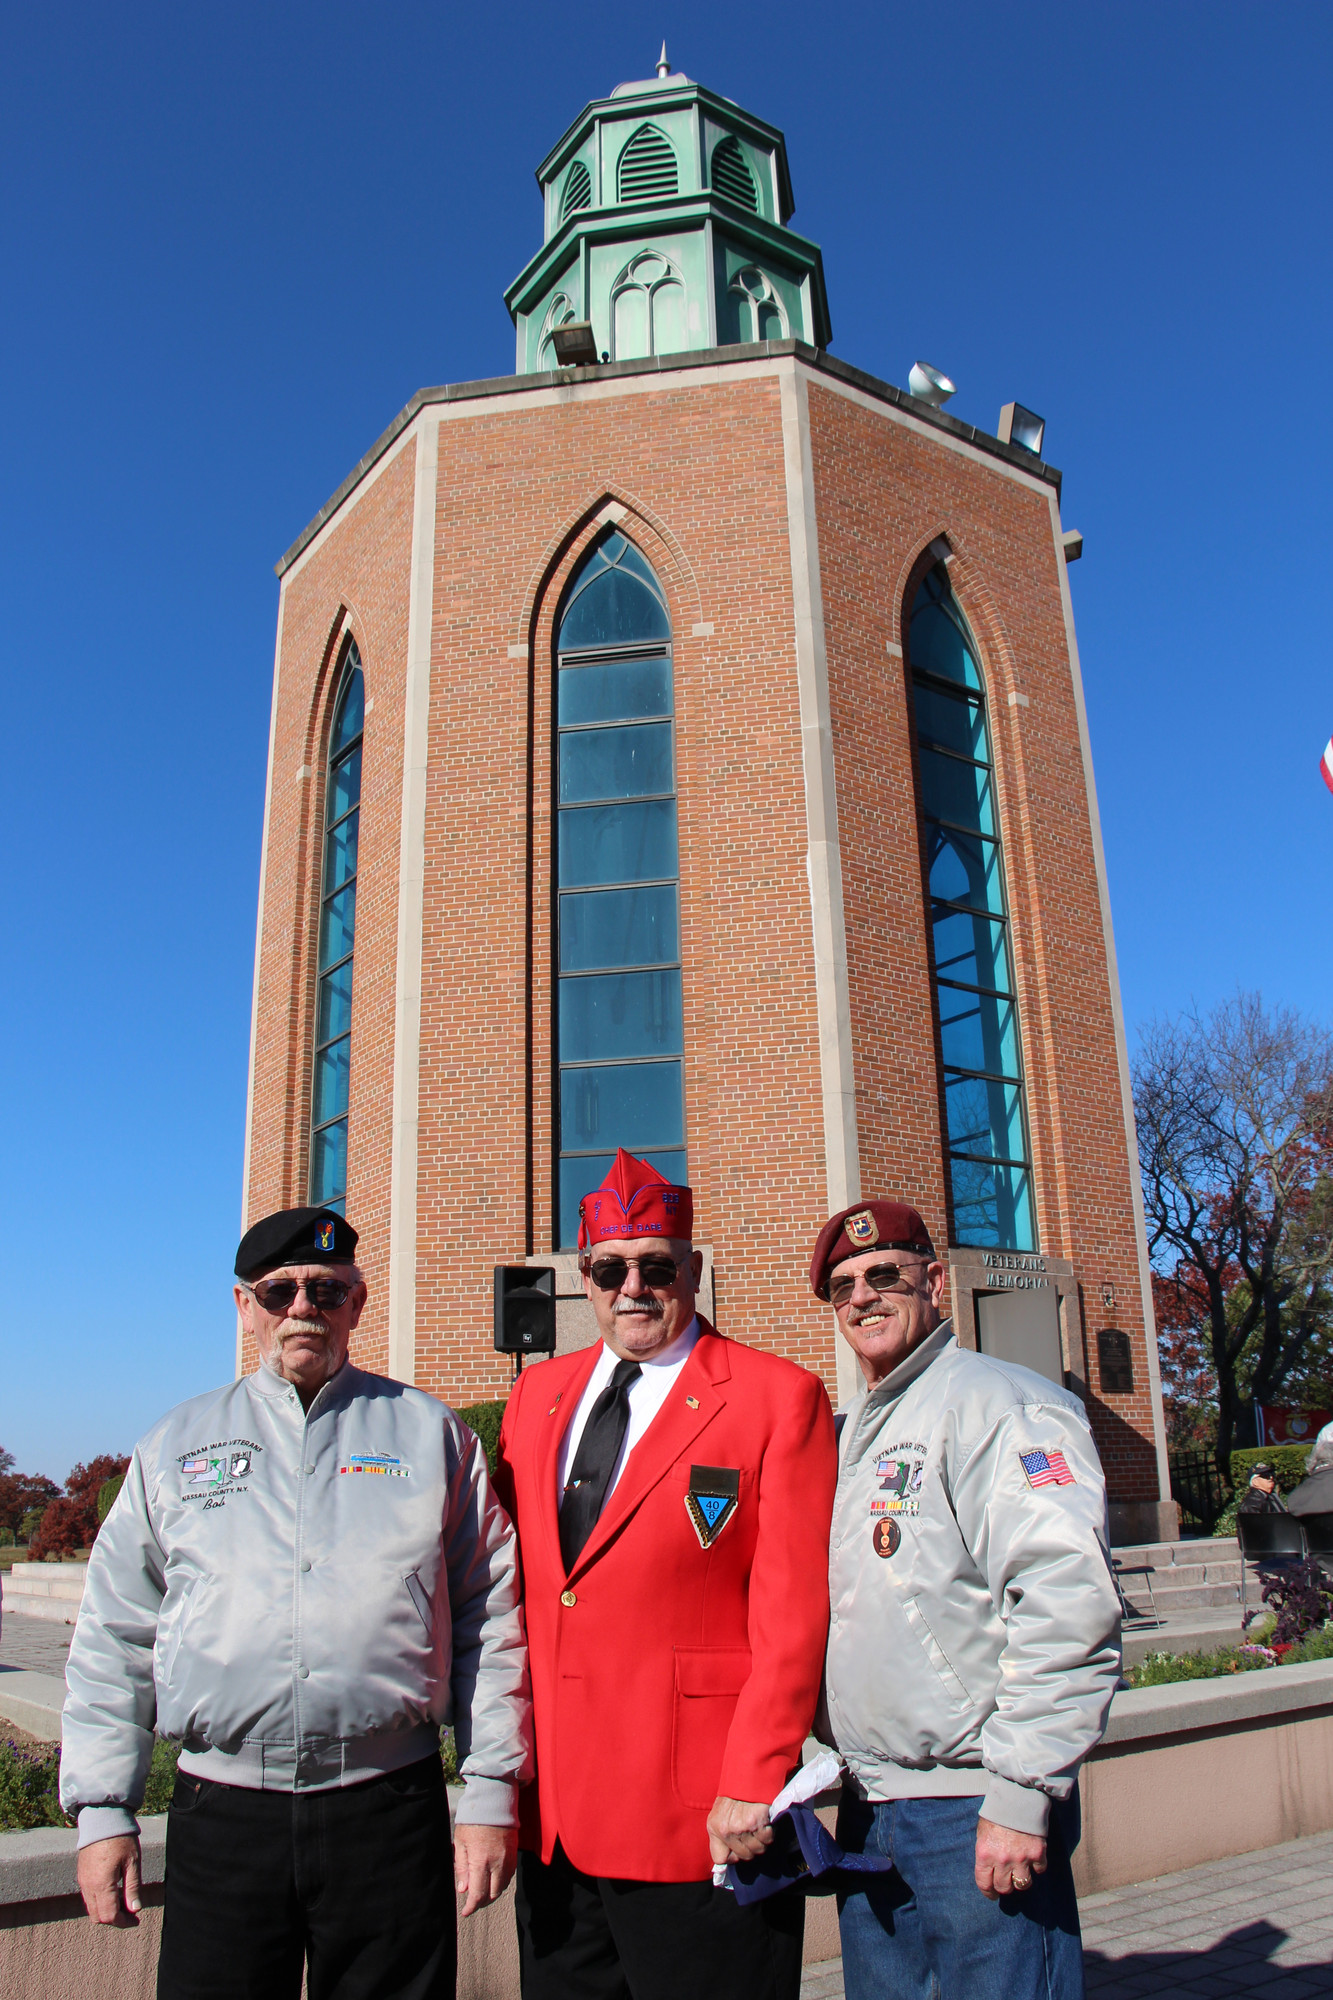 Pat Yngstrom, of Merrick, Kevin Lawlor, of East Rockaway, and Bob Reichel, also of Merrick, joined together in Veterans Memorial Plaza in Eisenhower Park on Sunday.